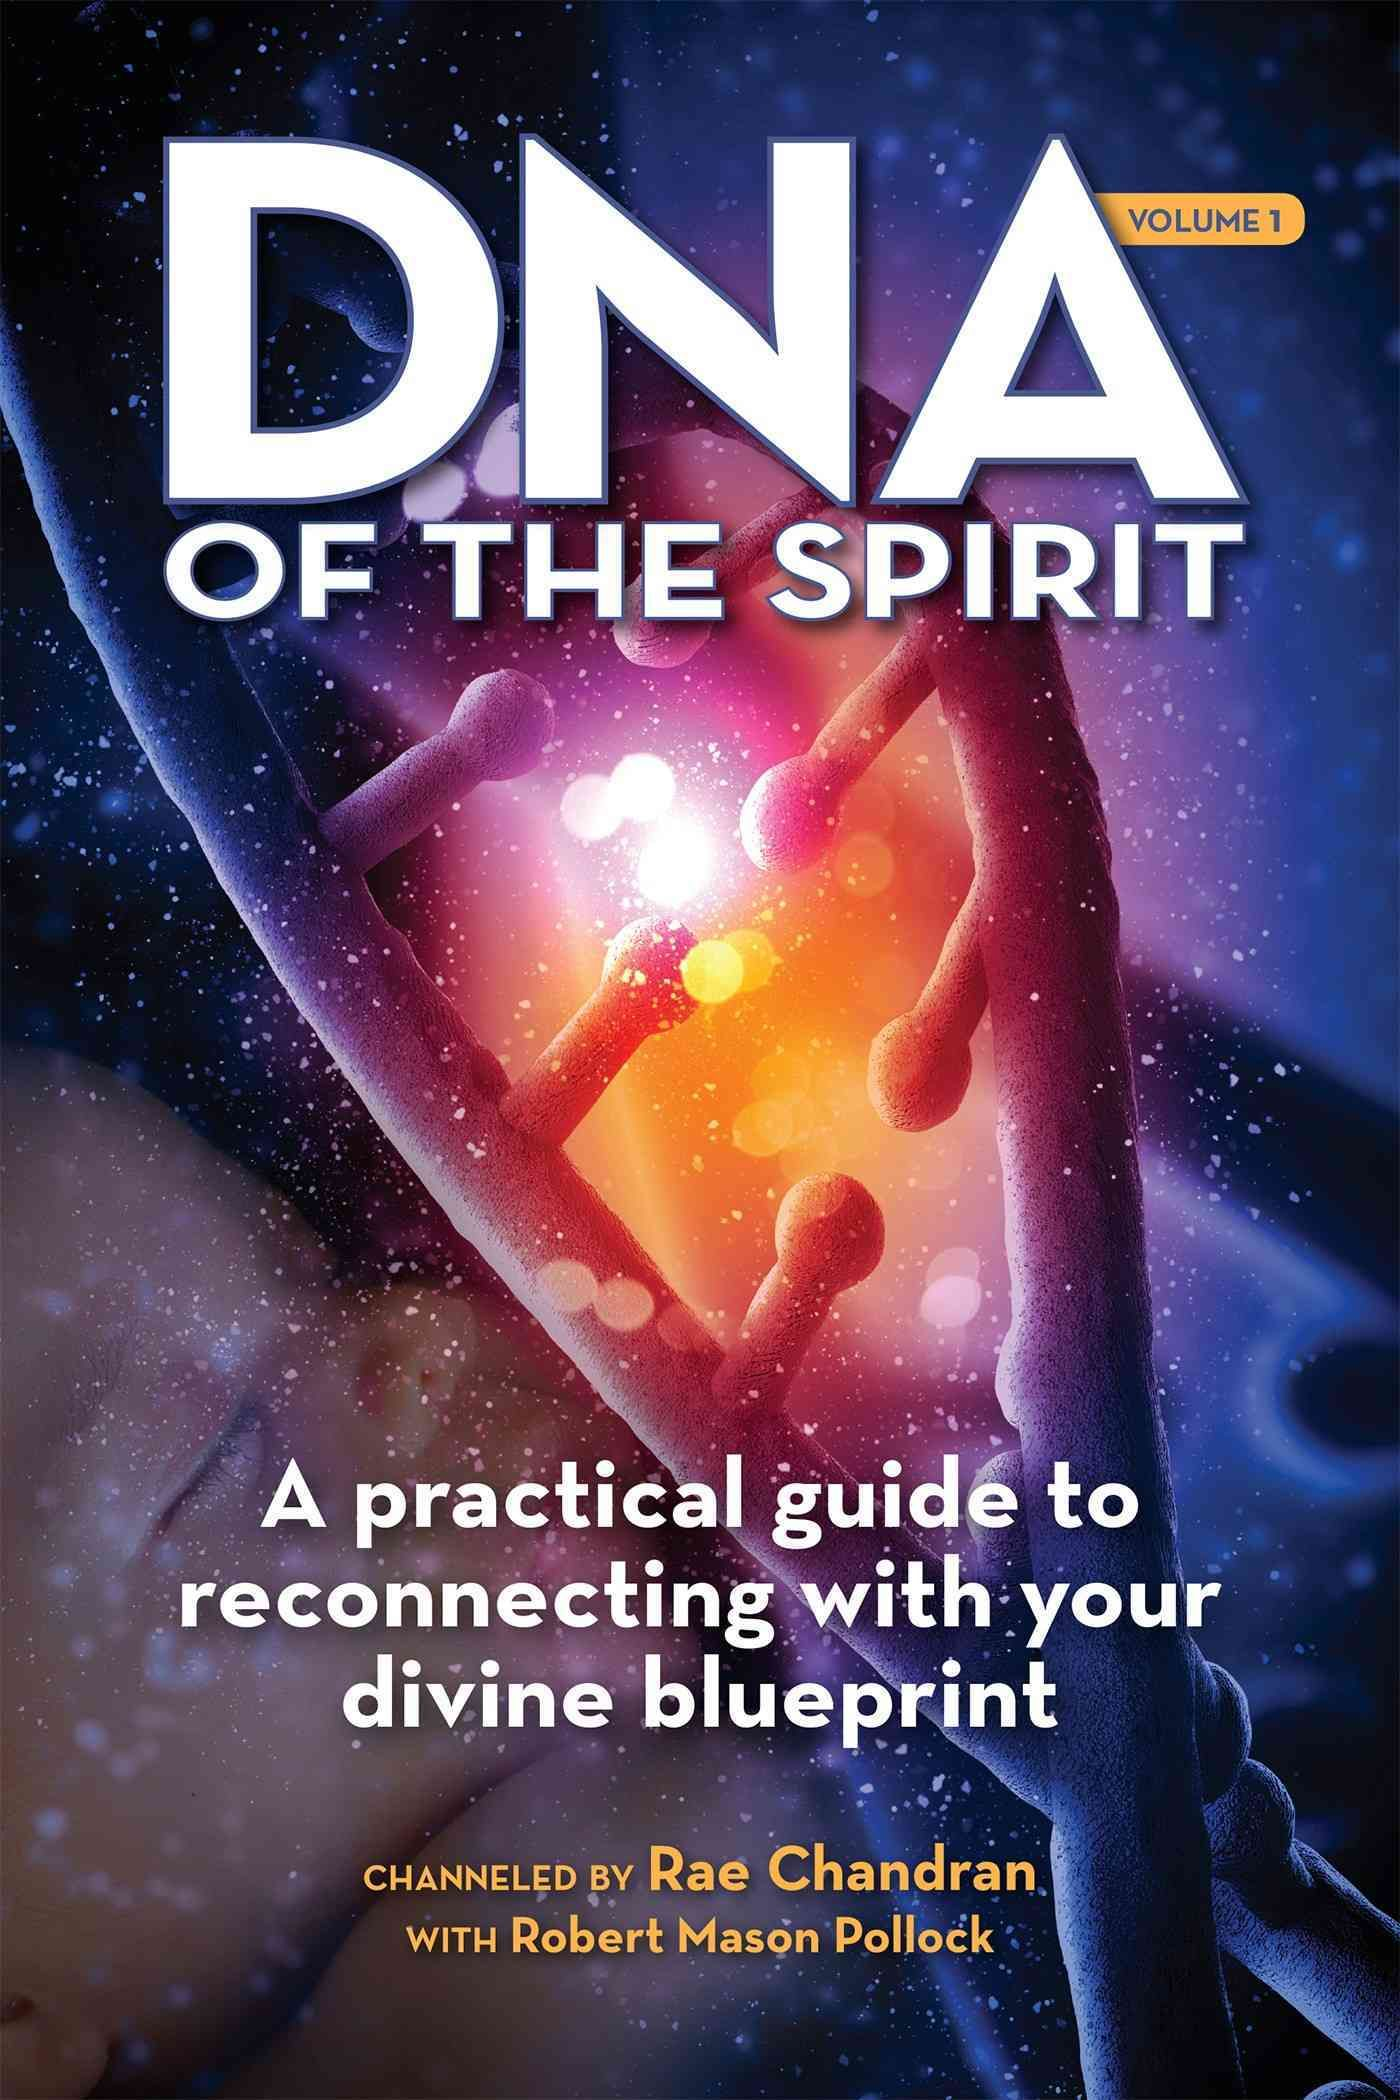 Dna of the spirit a practical guide to reconnecting with your dna of the spirit a practical guide to reconnecting with your divine blueprint malvernweather Image collections